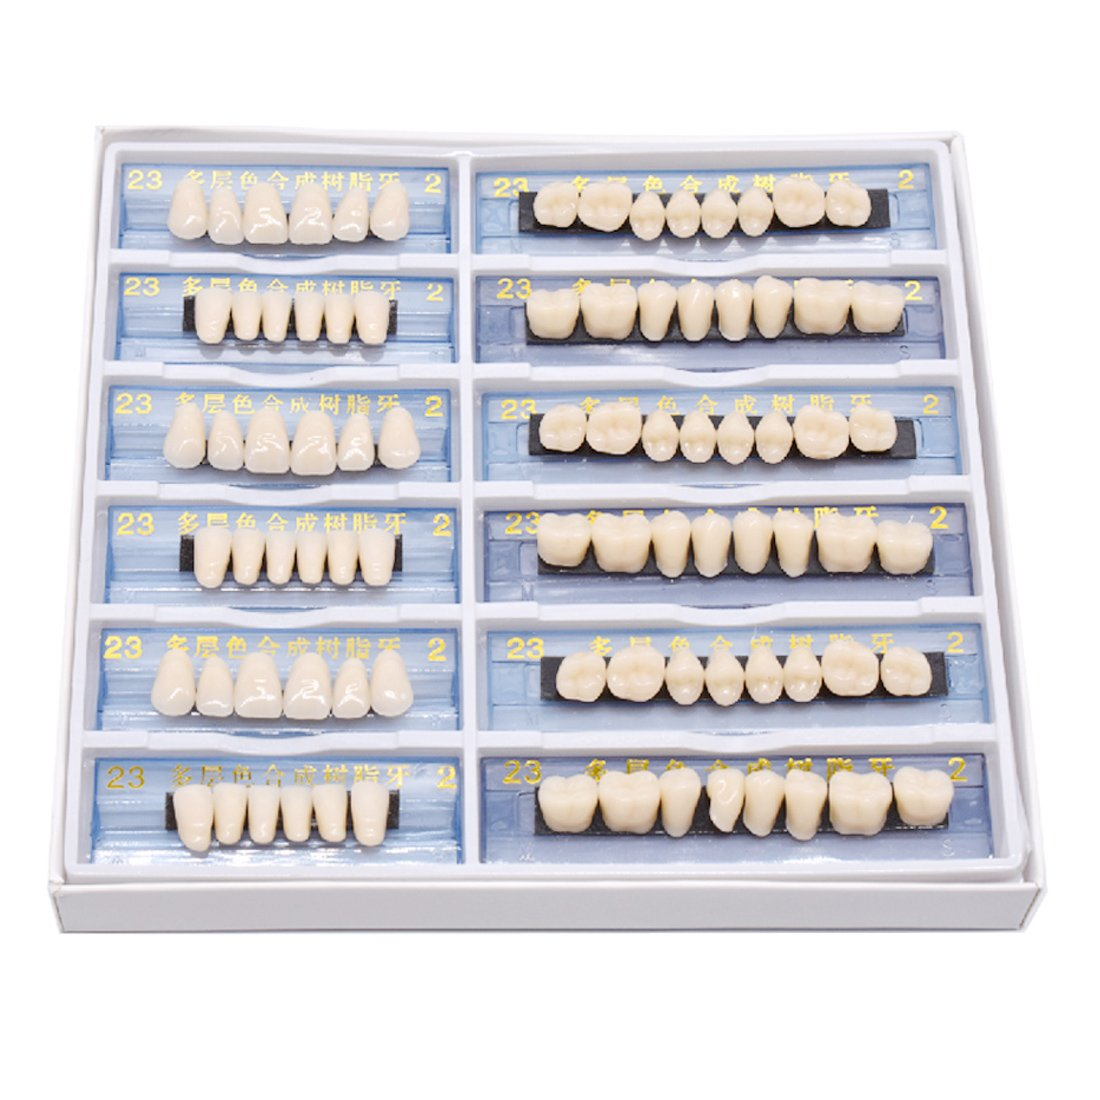 Oral Dentistry 168pcs/set Dental Complete Acrylic Resin Denture Dental Teeth Upper+Lower Shade 23 A2 Oral Care Whitening Tooth Model Dental Materials